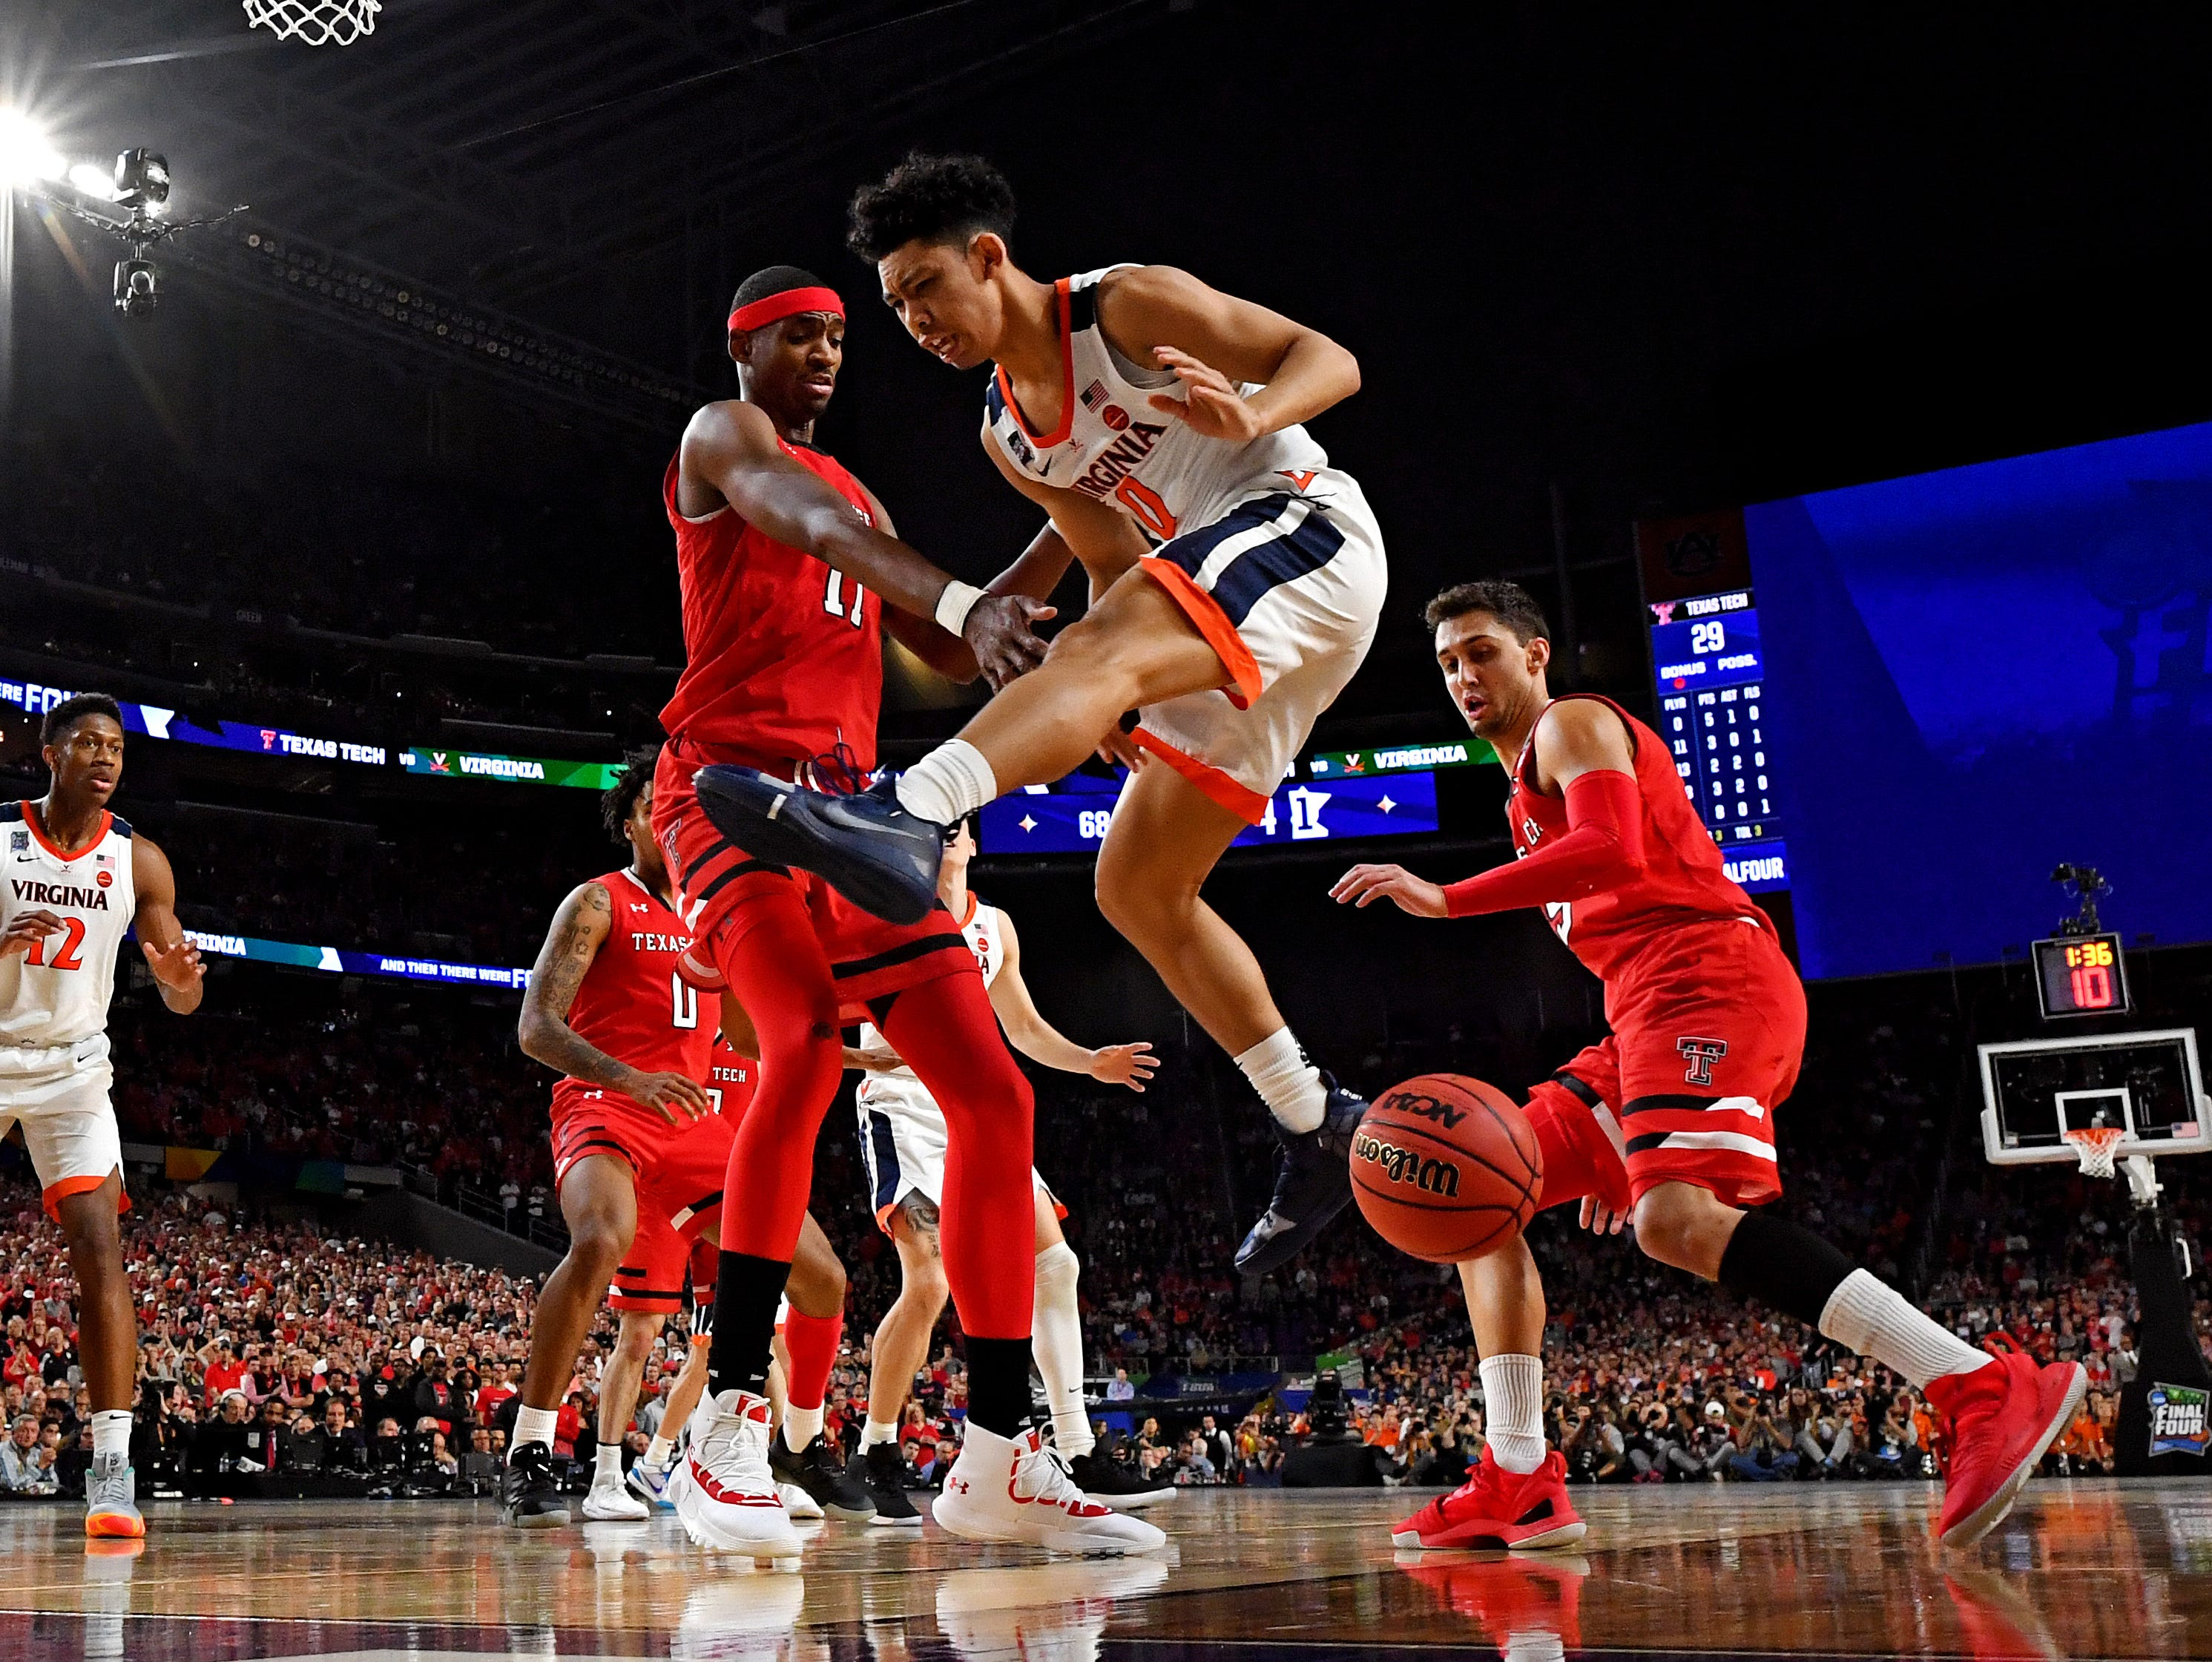 Apr 8, 2019; Minneapolis, MN, USA; Texas Tech Red Raiders forward Tariq Owens (11) knocks the ball away from Virginia Cavaliers guard Kihei Clark (0) during the first half in the championship game of the 2019 men's Final Four at US Bank Stadium. Mandatory Credit: Bob Donnan-USA TODAY Sports